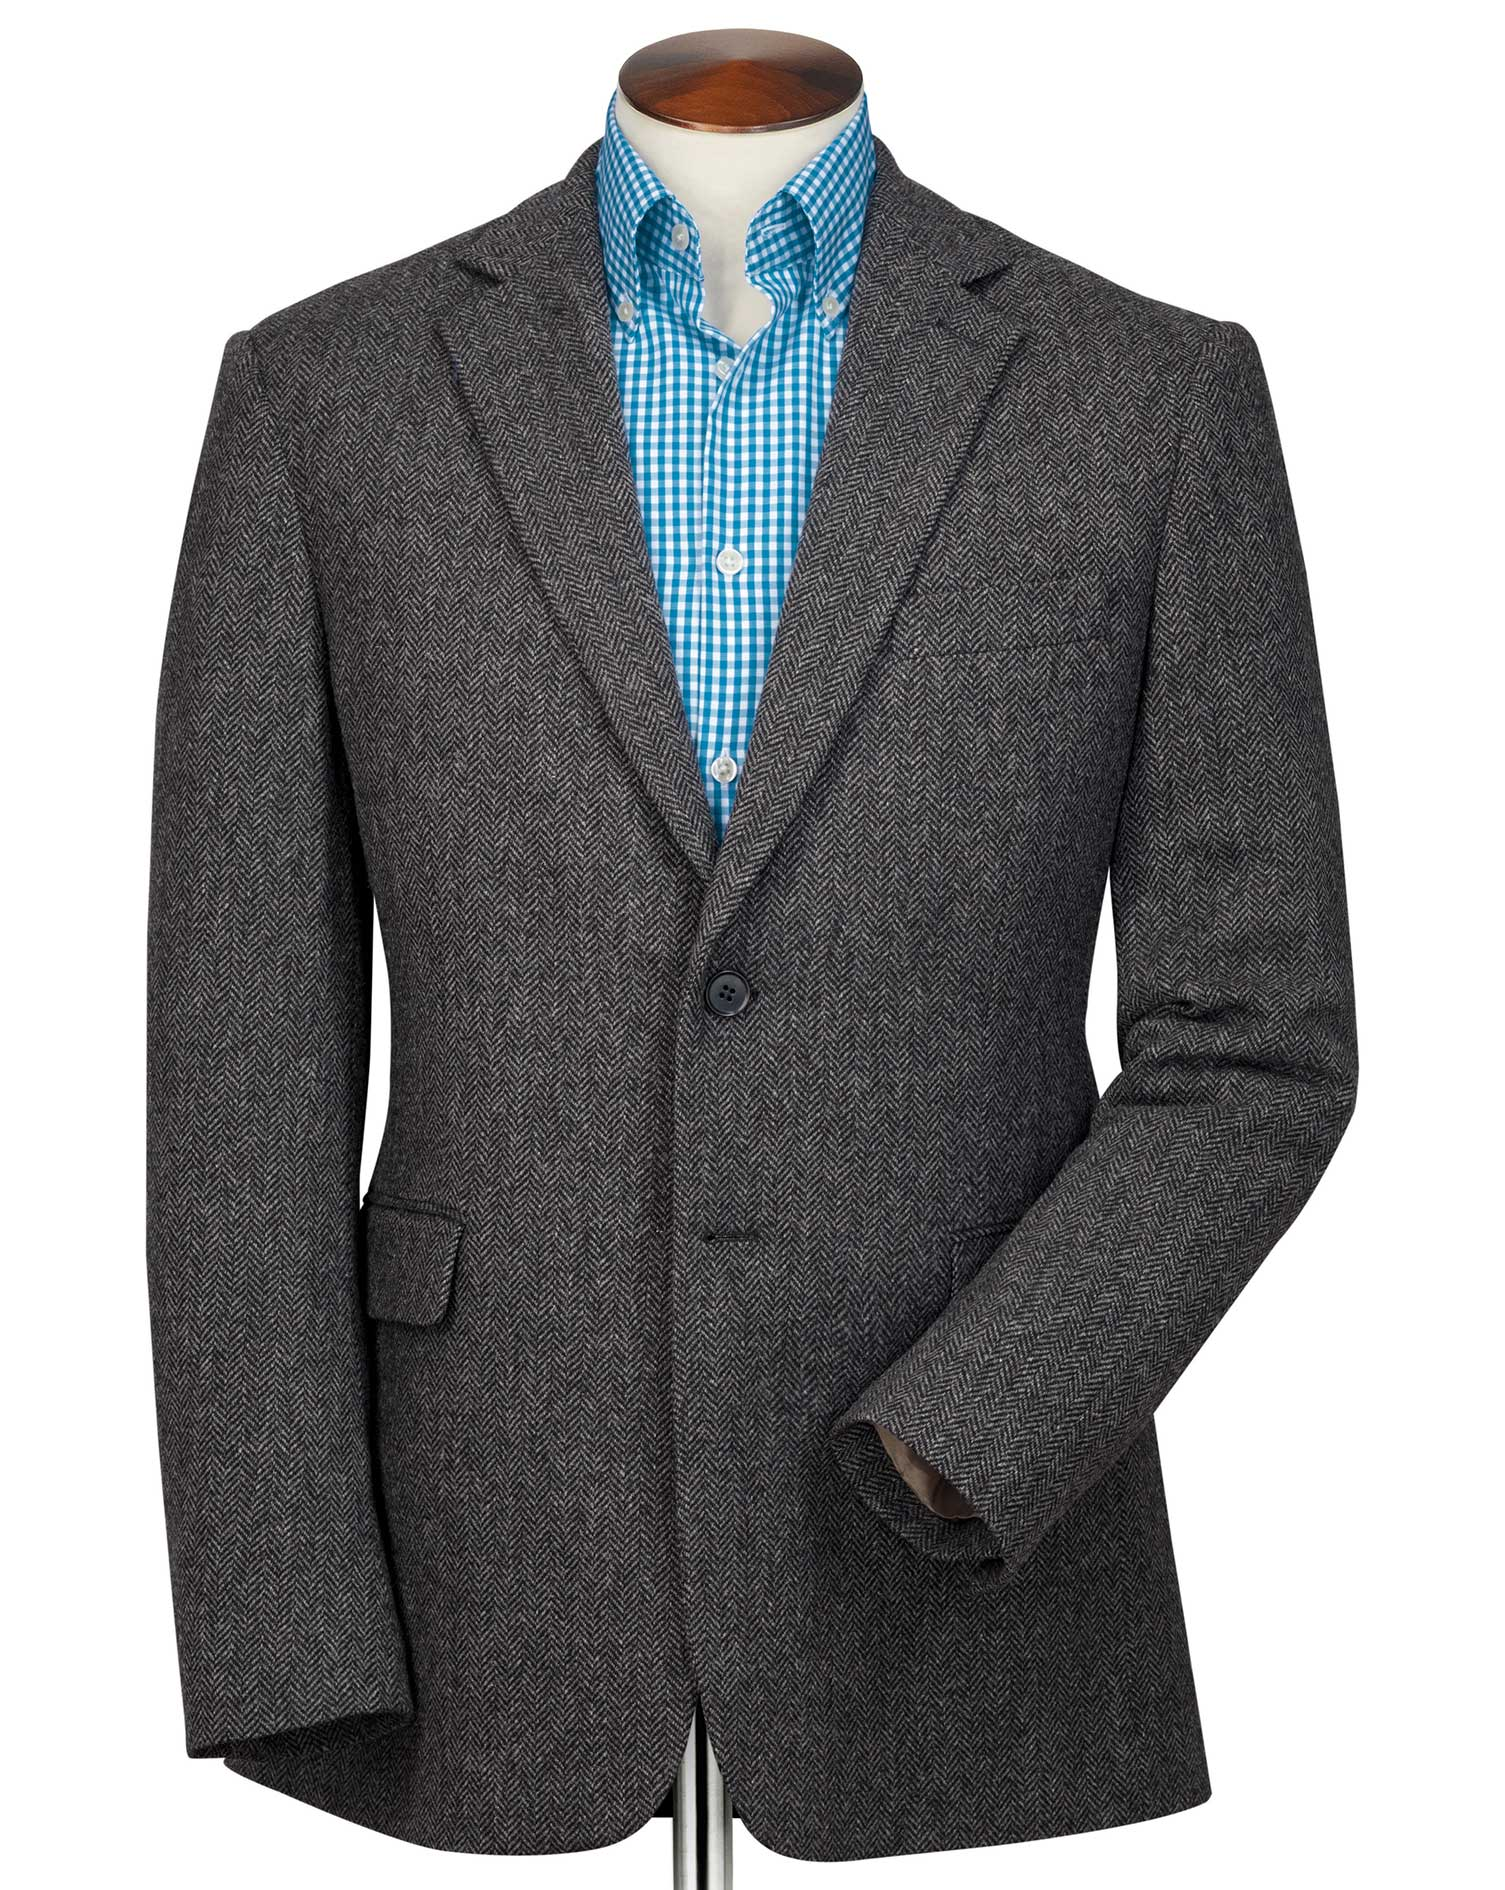 Slim Fit Charcoal Herringbone Wool Wool Jacket Size 42 Regular by Charles Tyrwhitt